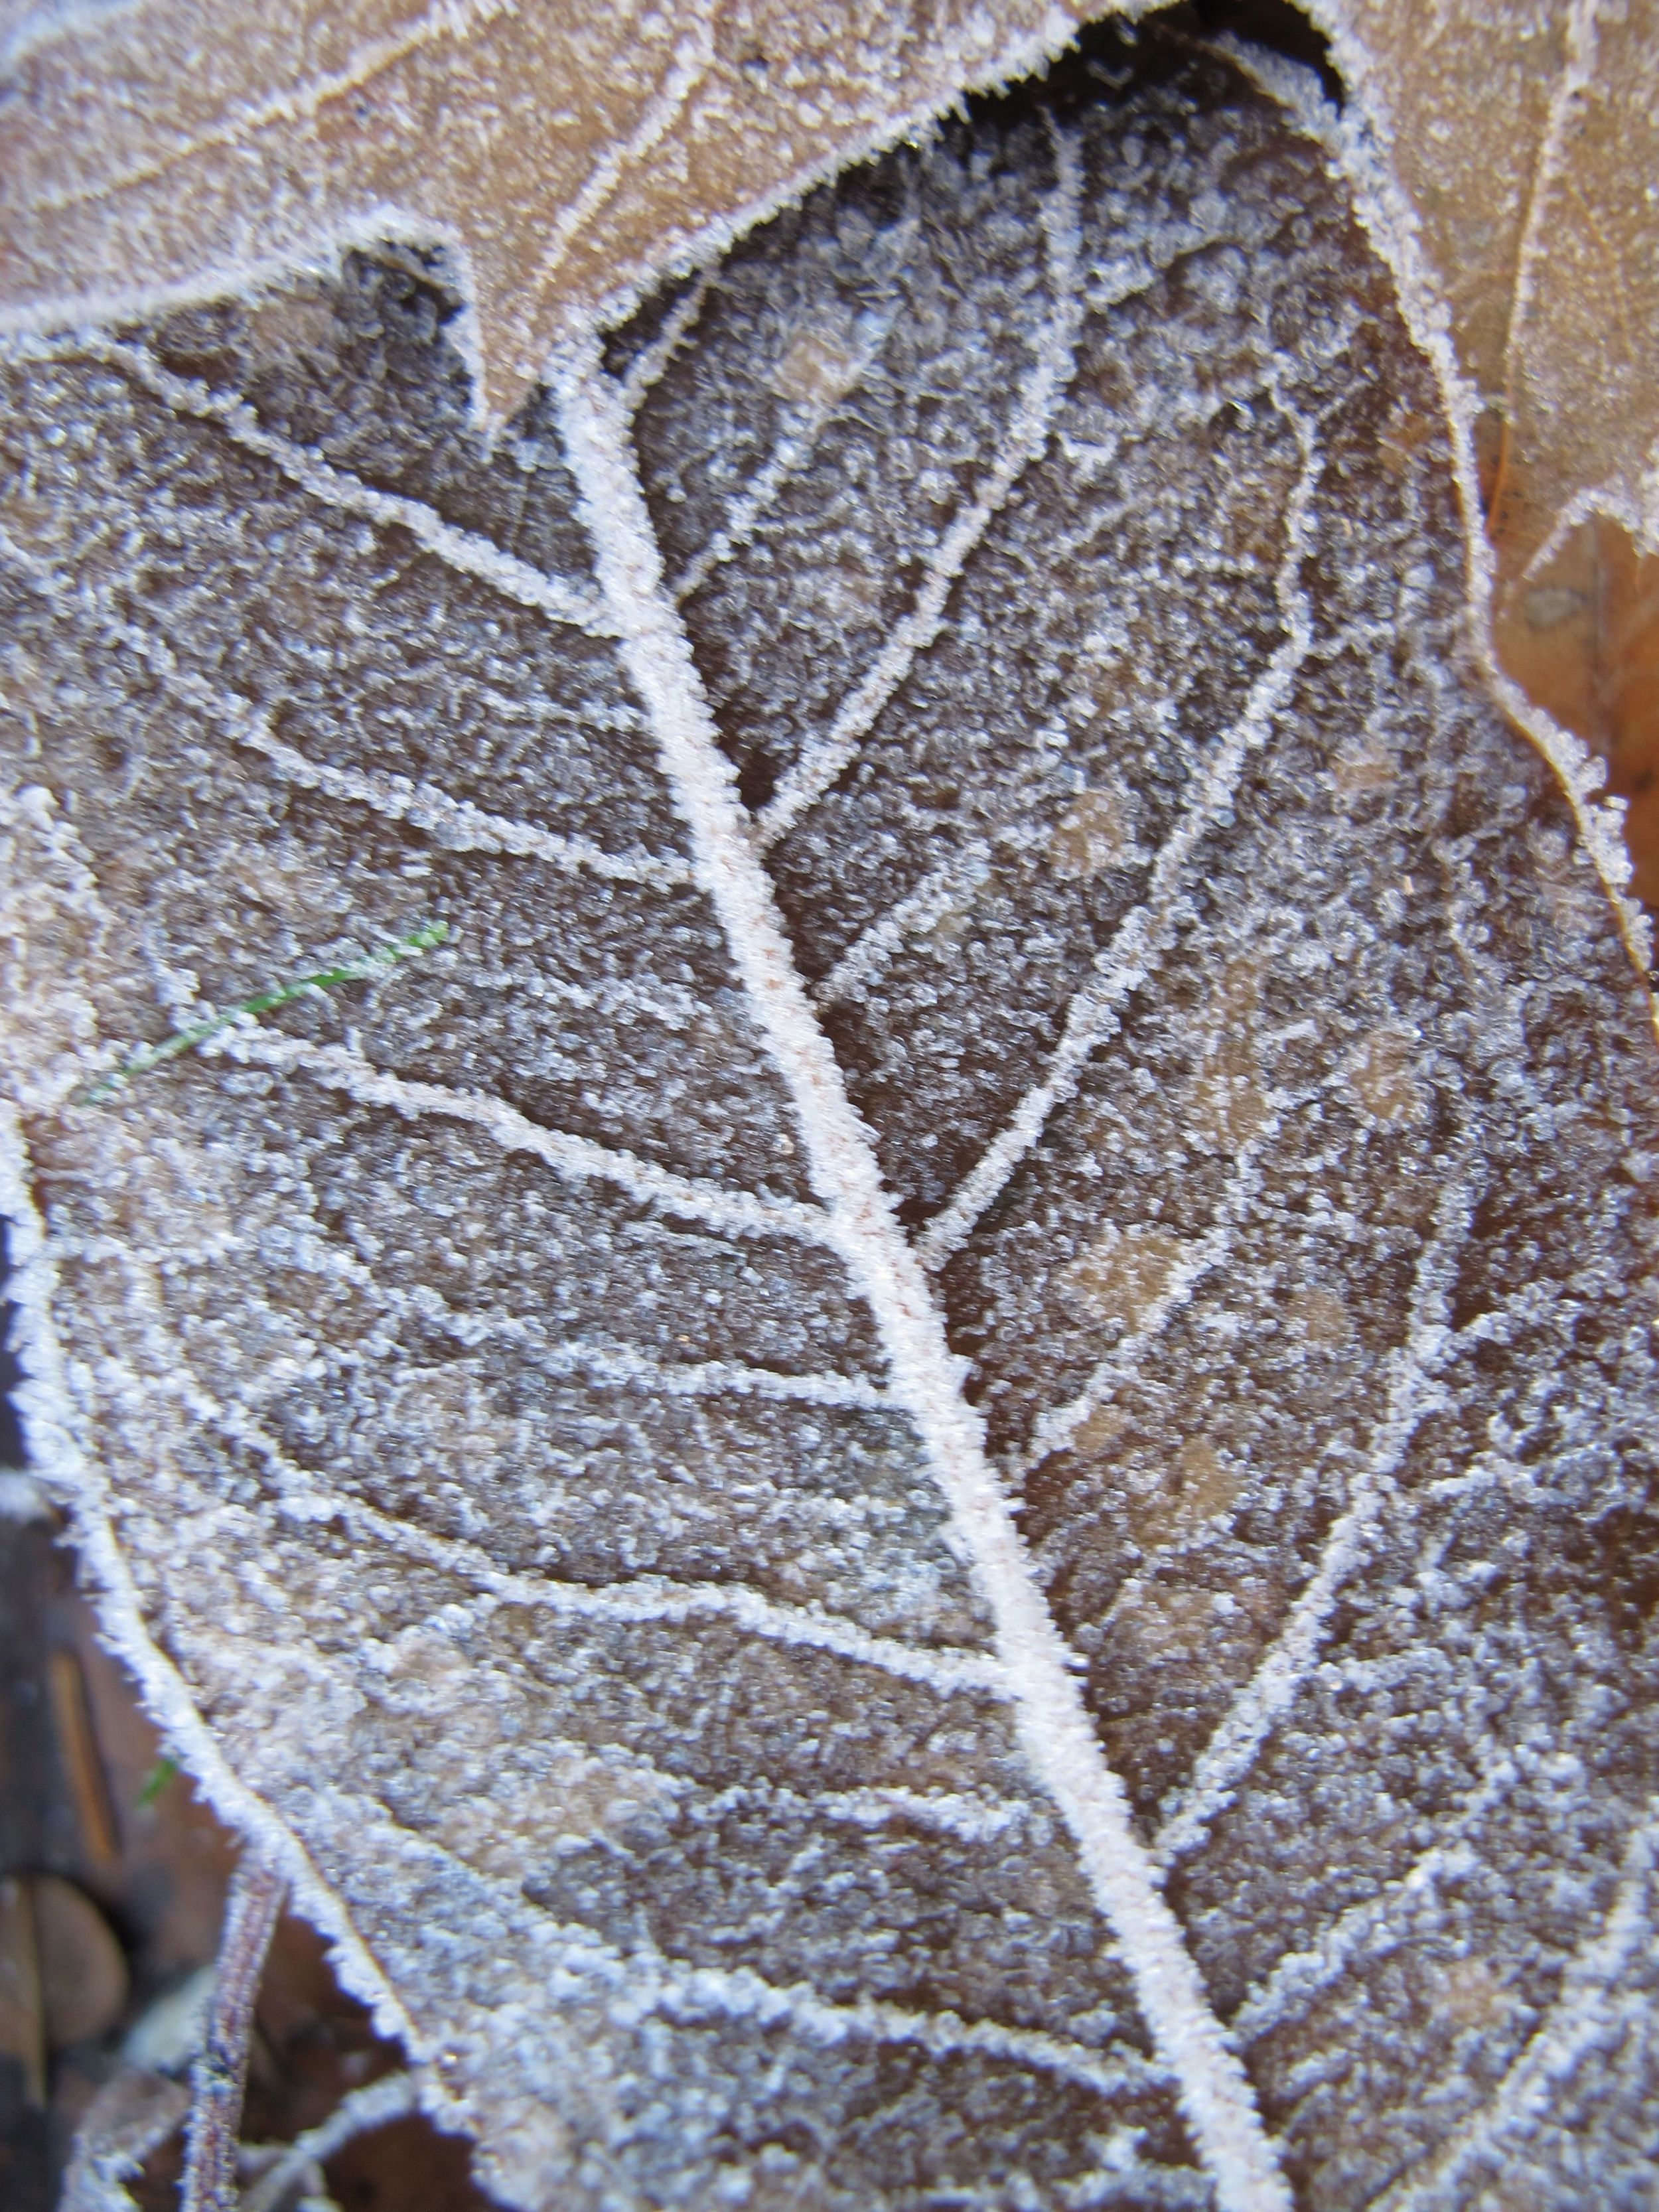 Here the frost illuminates the vein structure.